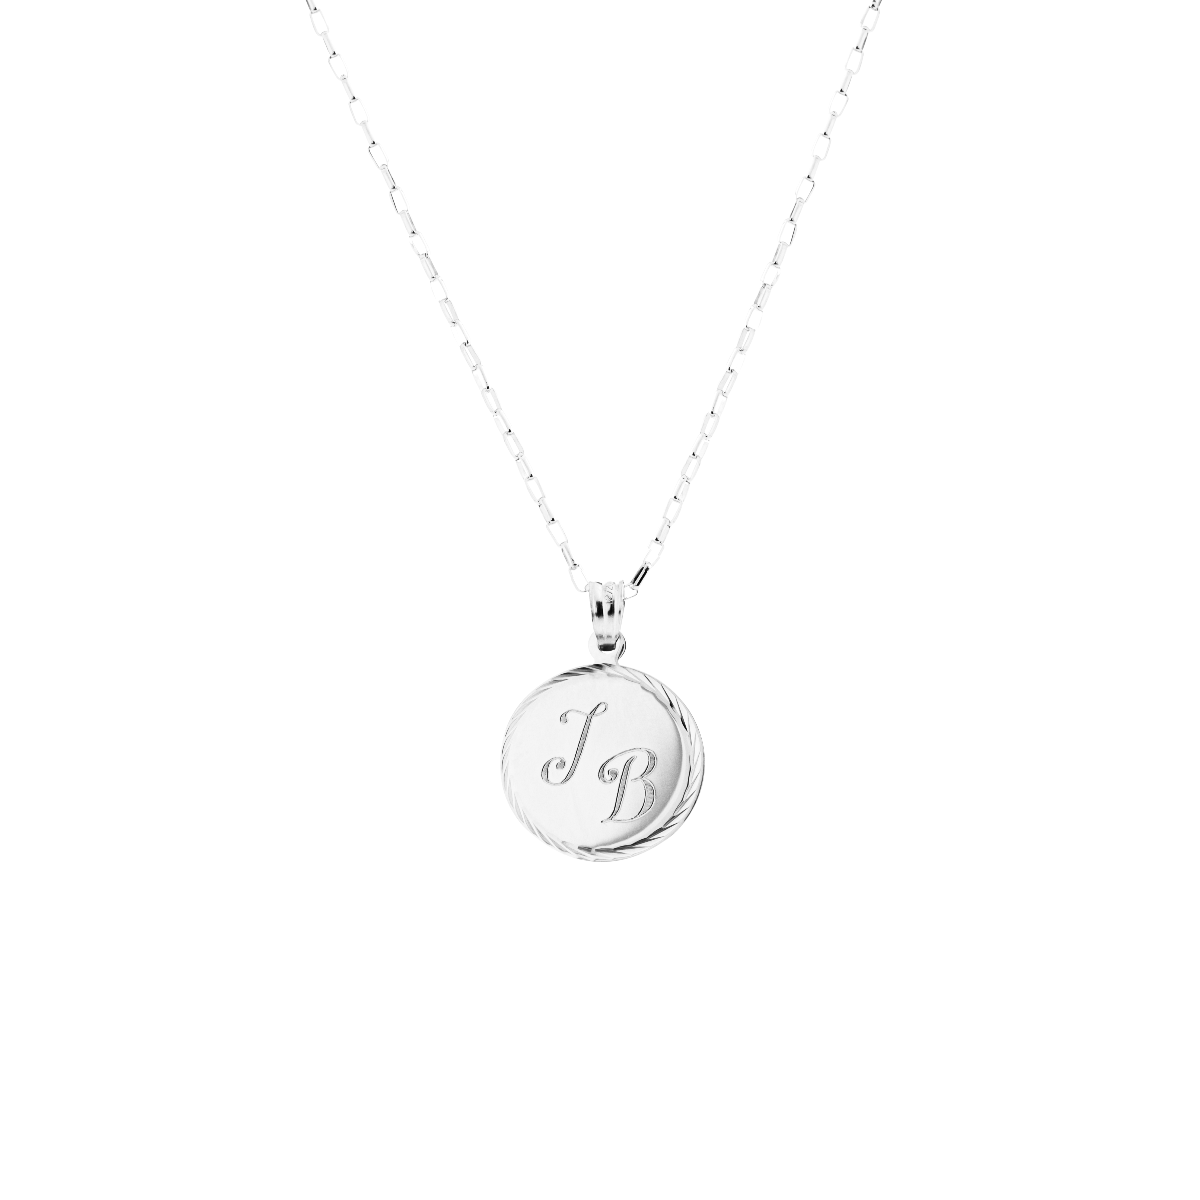 initial necklace by chantal janzen silver